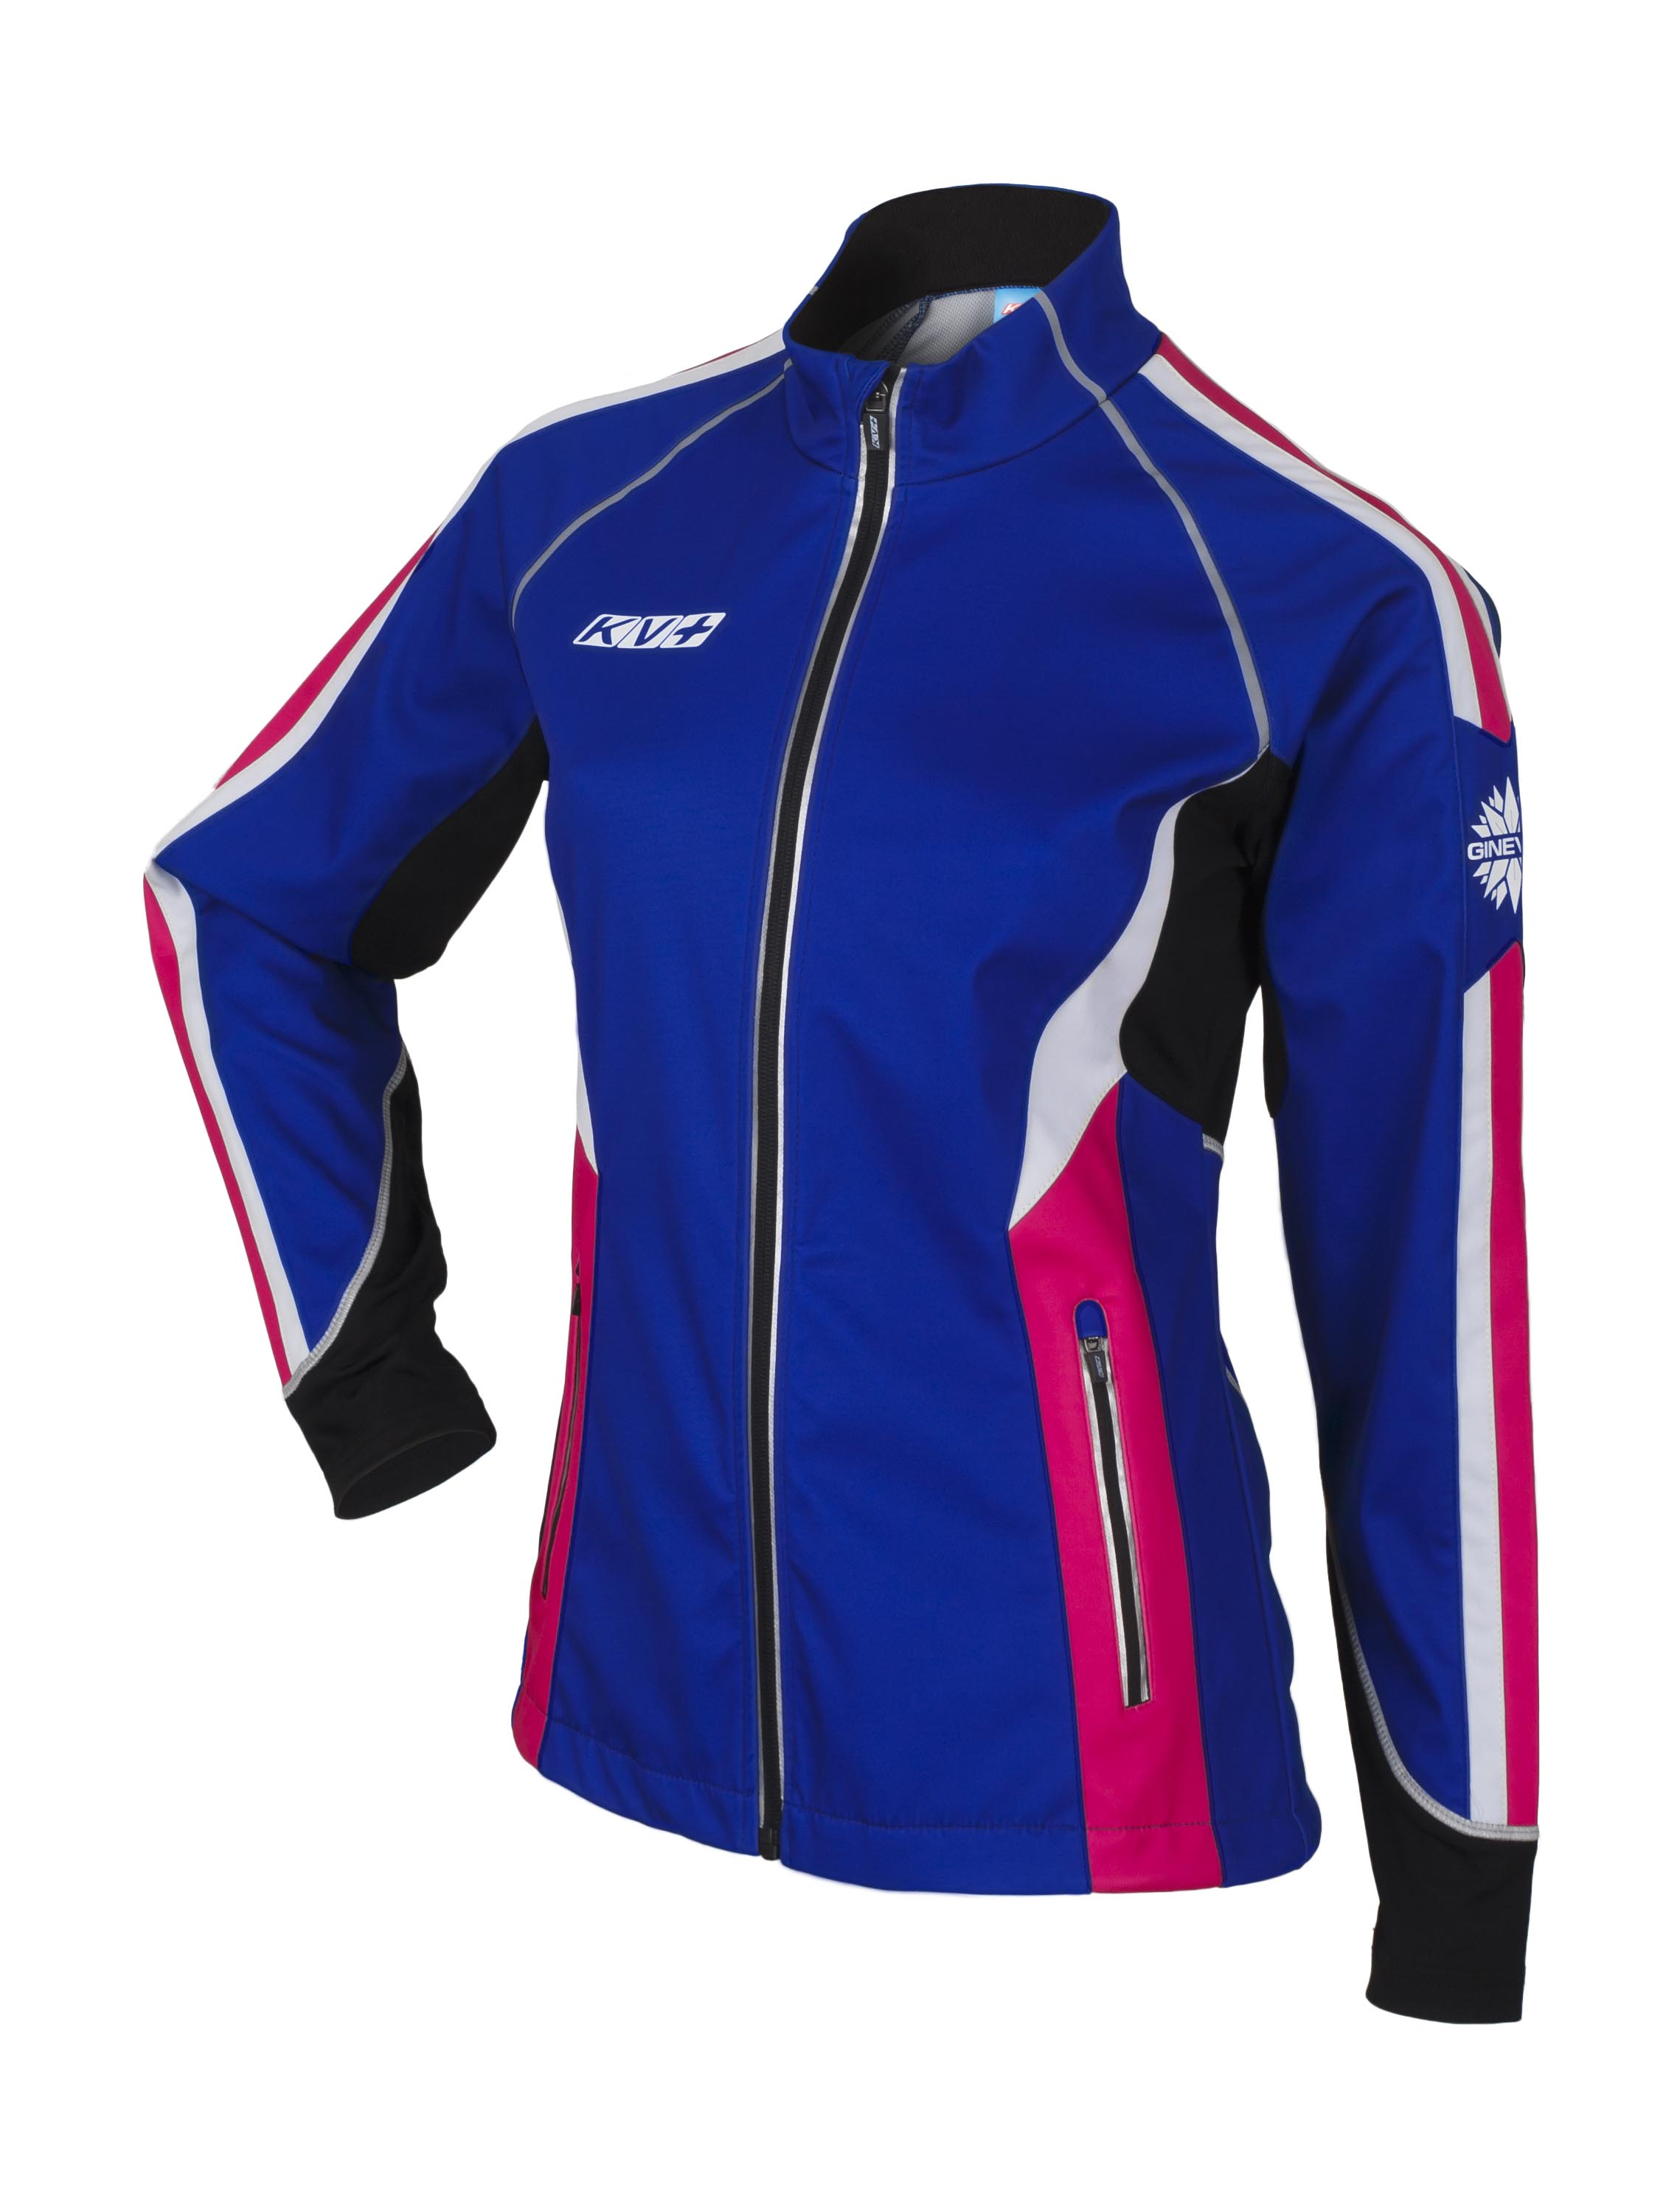 detail KV+ GINEVRA JACKET WOMAN – navy/pink 7V120-5